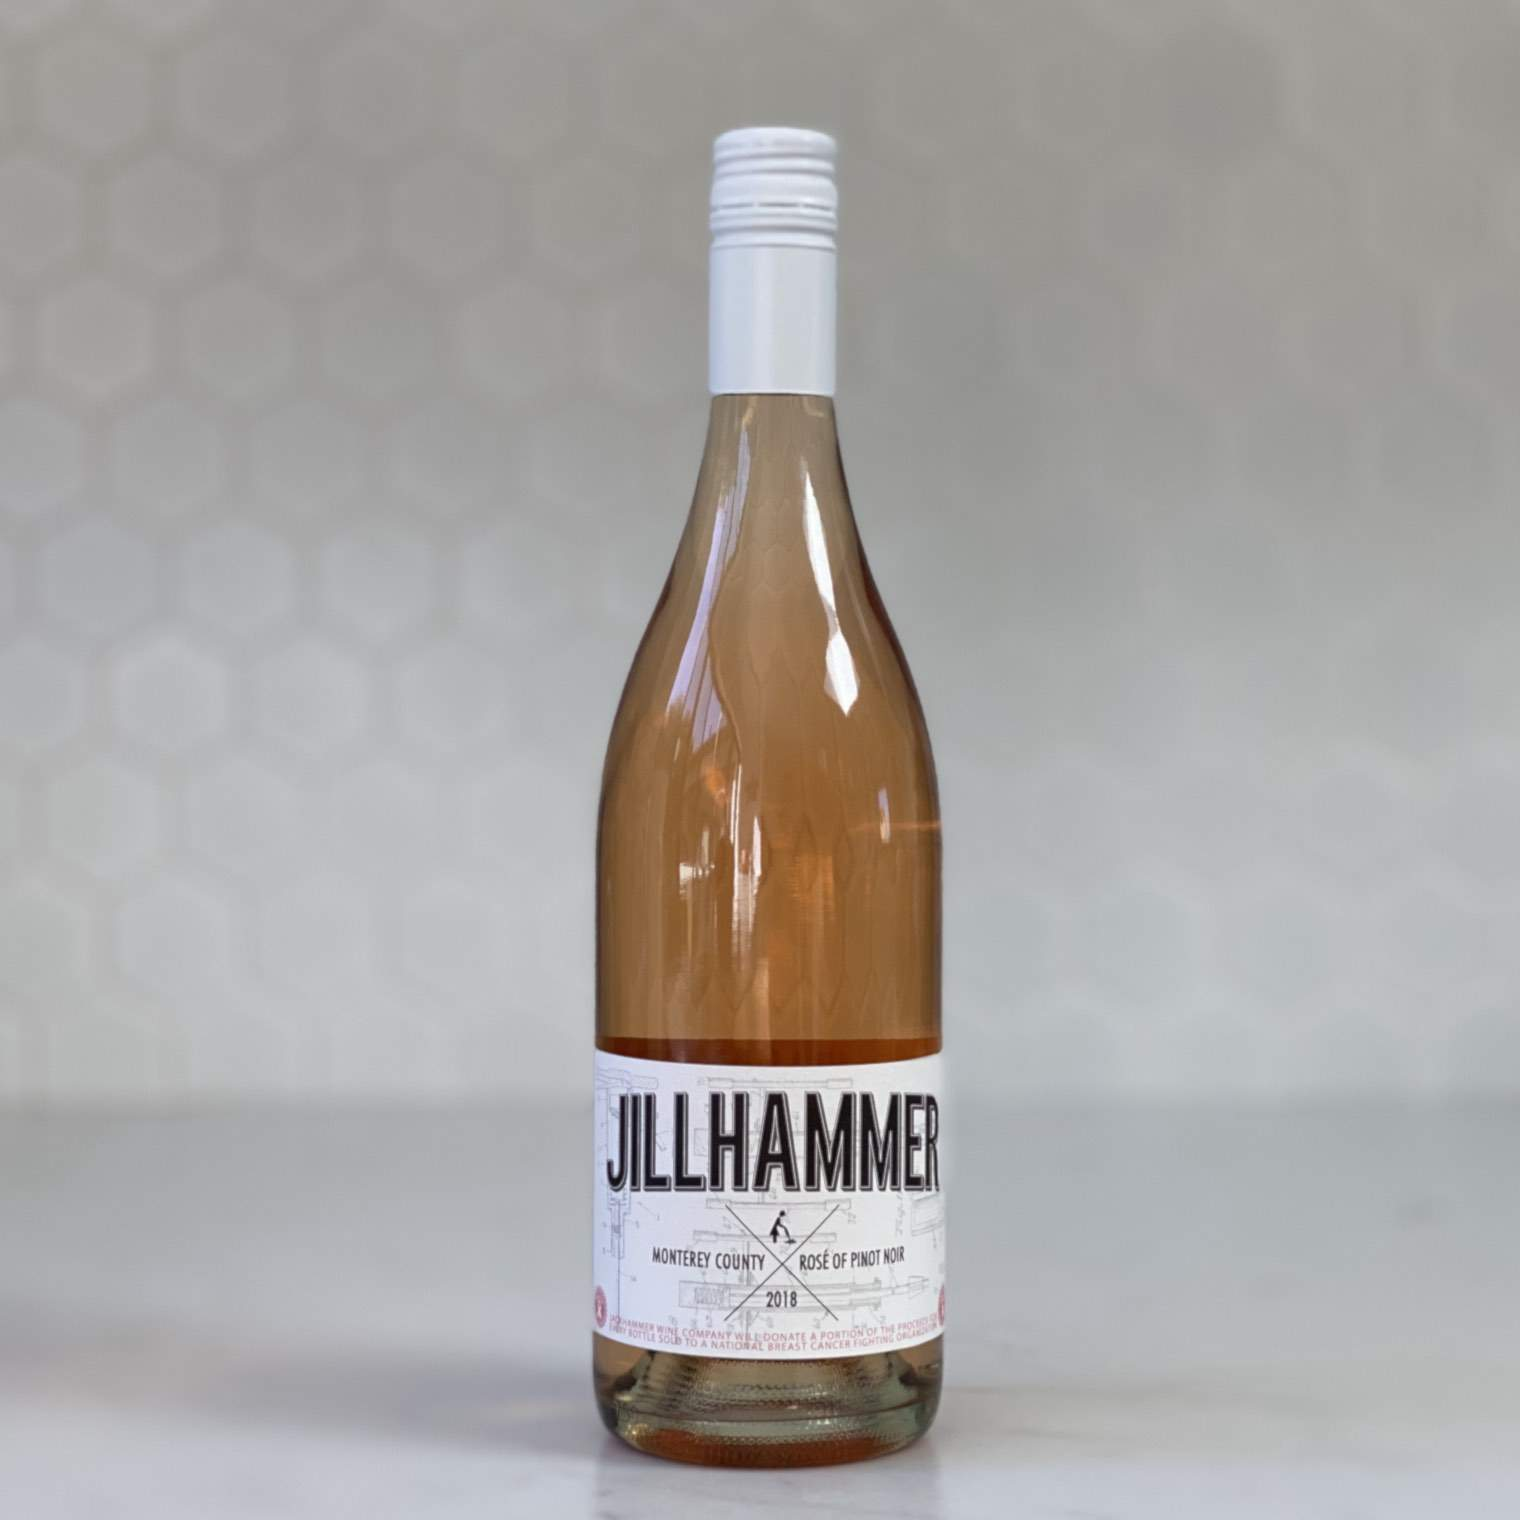 JACKHAMMER WINE CO kristy's vineyard jillhammer rose 2018